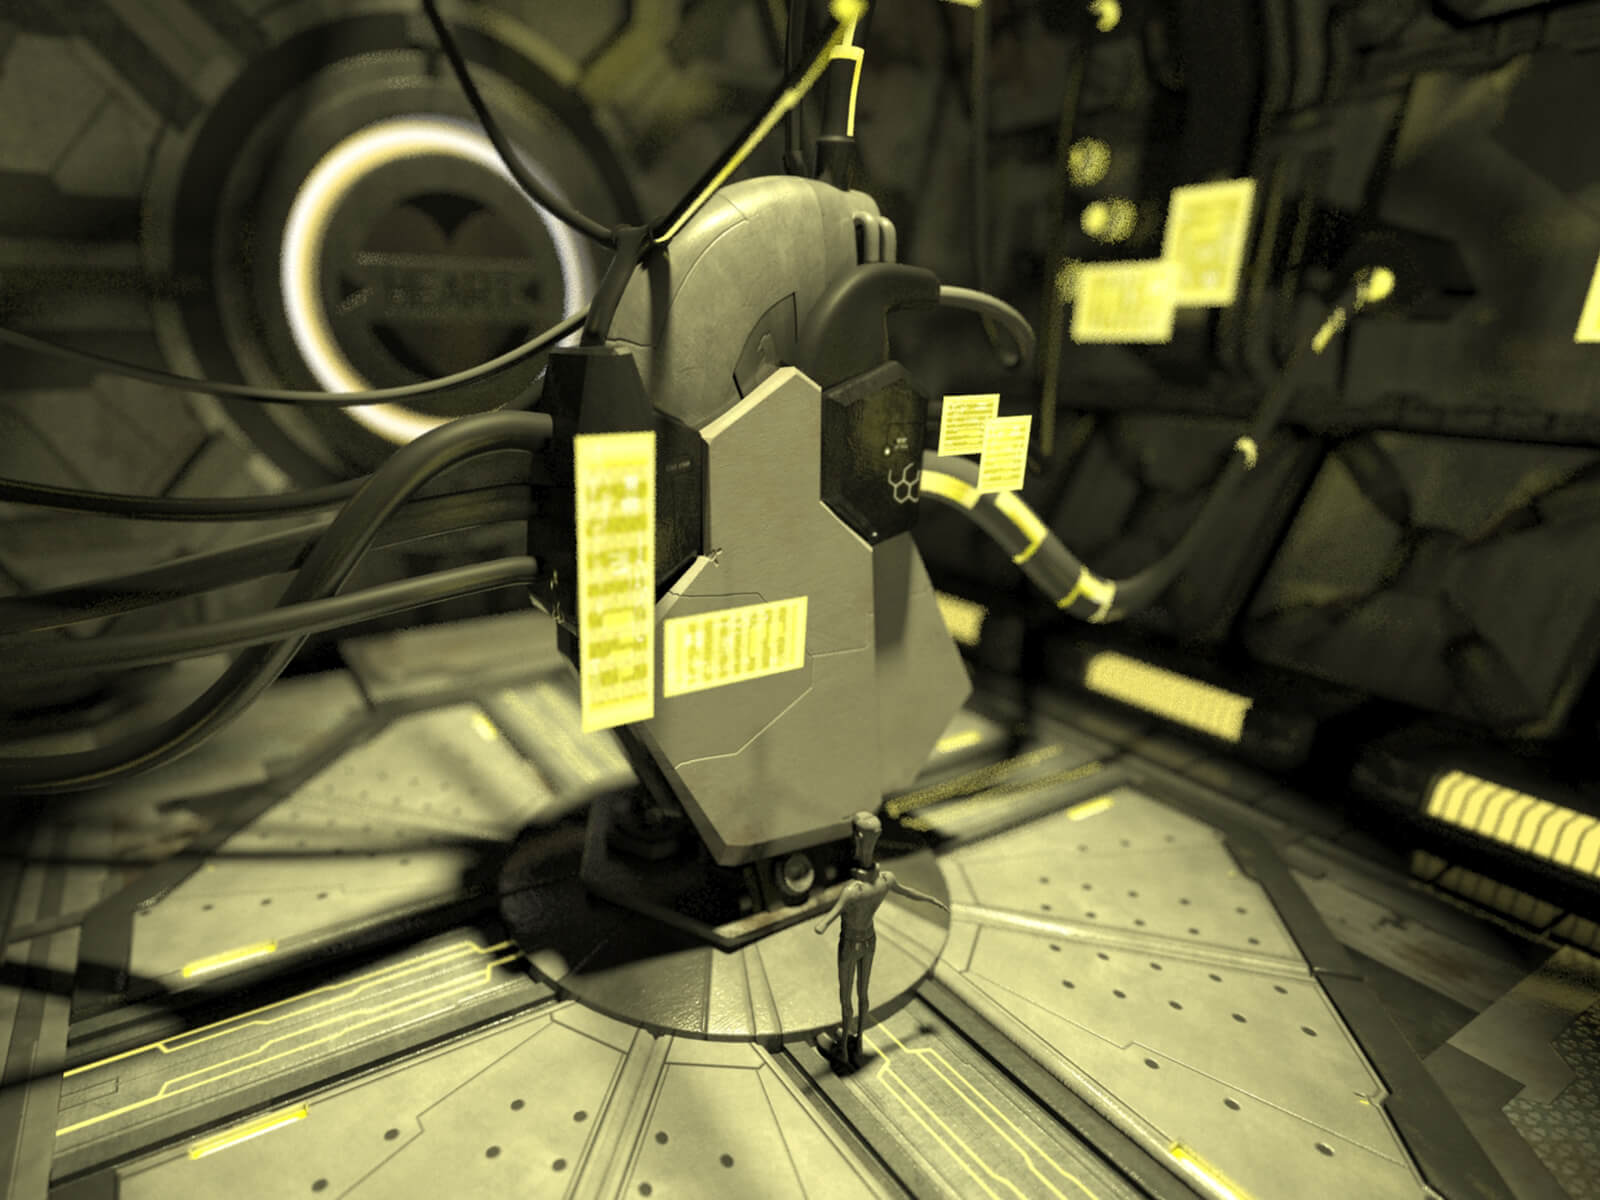 3D CGI concept image of a man standing before a towering mechanical metal structure hooked into the walls by tubes and cables